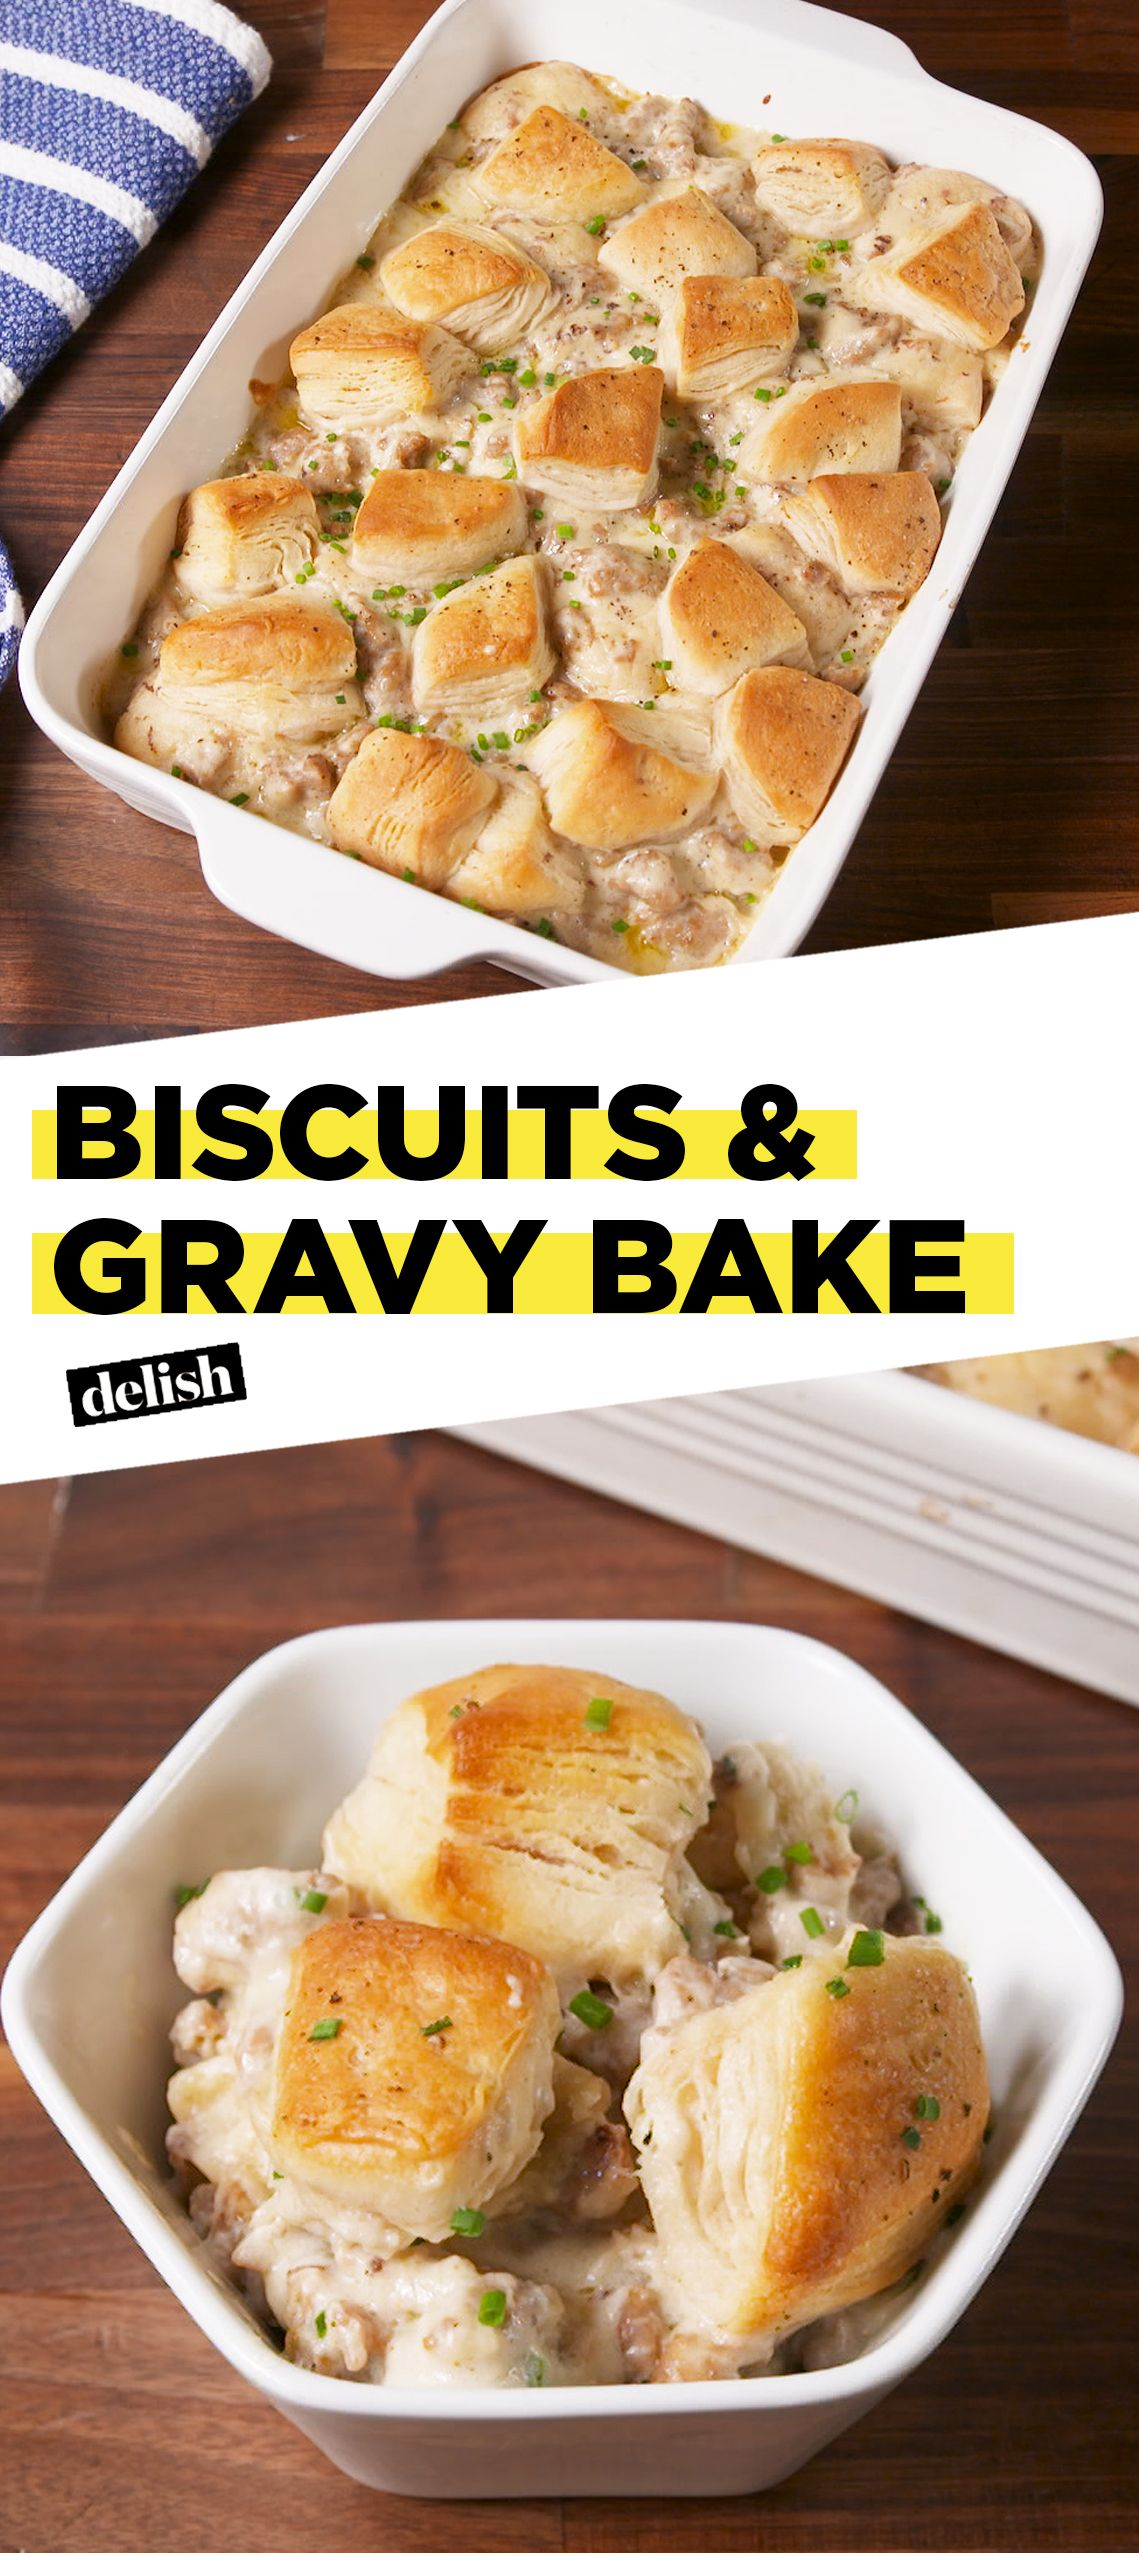 Biscuit And Gravy Bake Is Meant For Sunday Morning Recipe Biscuit And Gravy Bake Biscuits And Gravy Recipes